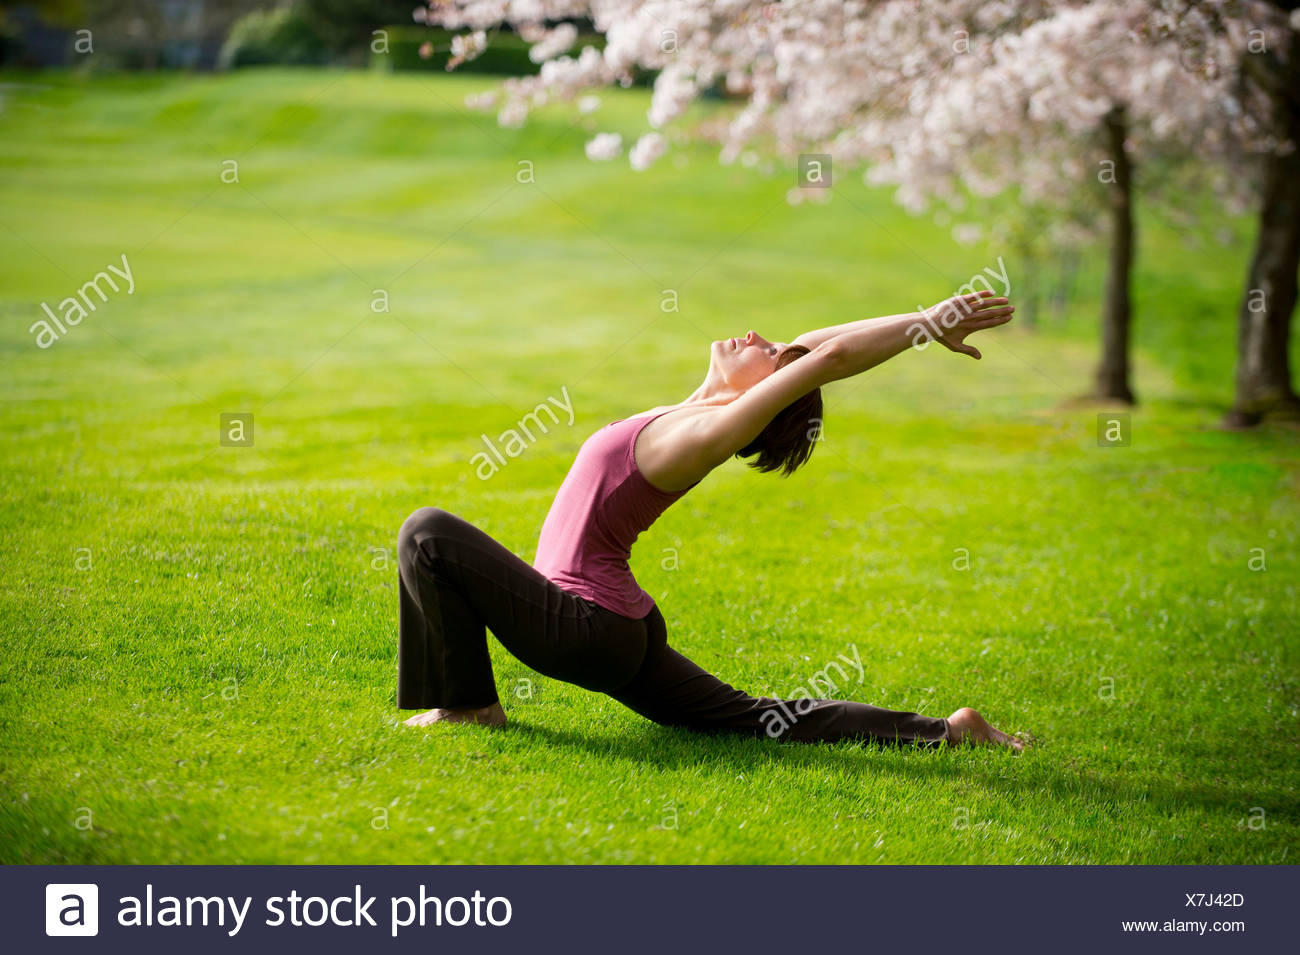 Woman in crescent moon yoga position in park - Stock Image